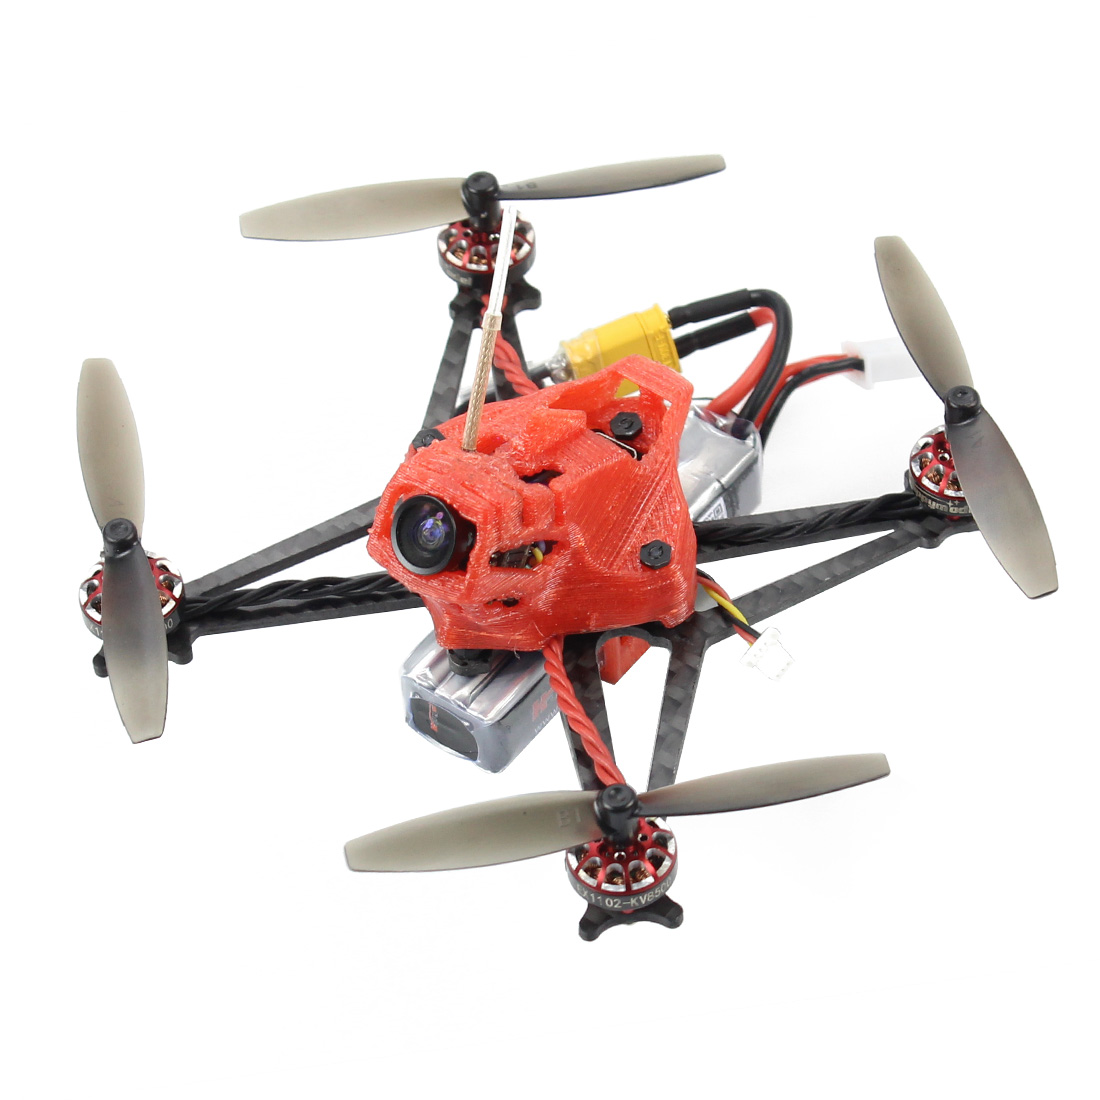 In stock Sailfly X 105mm Crazybee F4 PRO V2 1 AIO Flight Controller 2 3S Micro